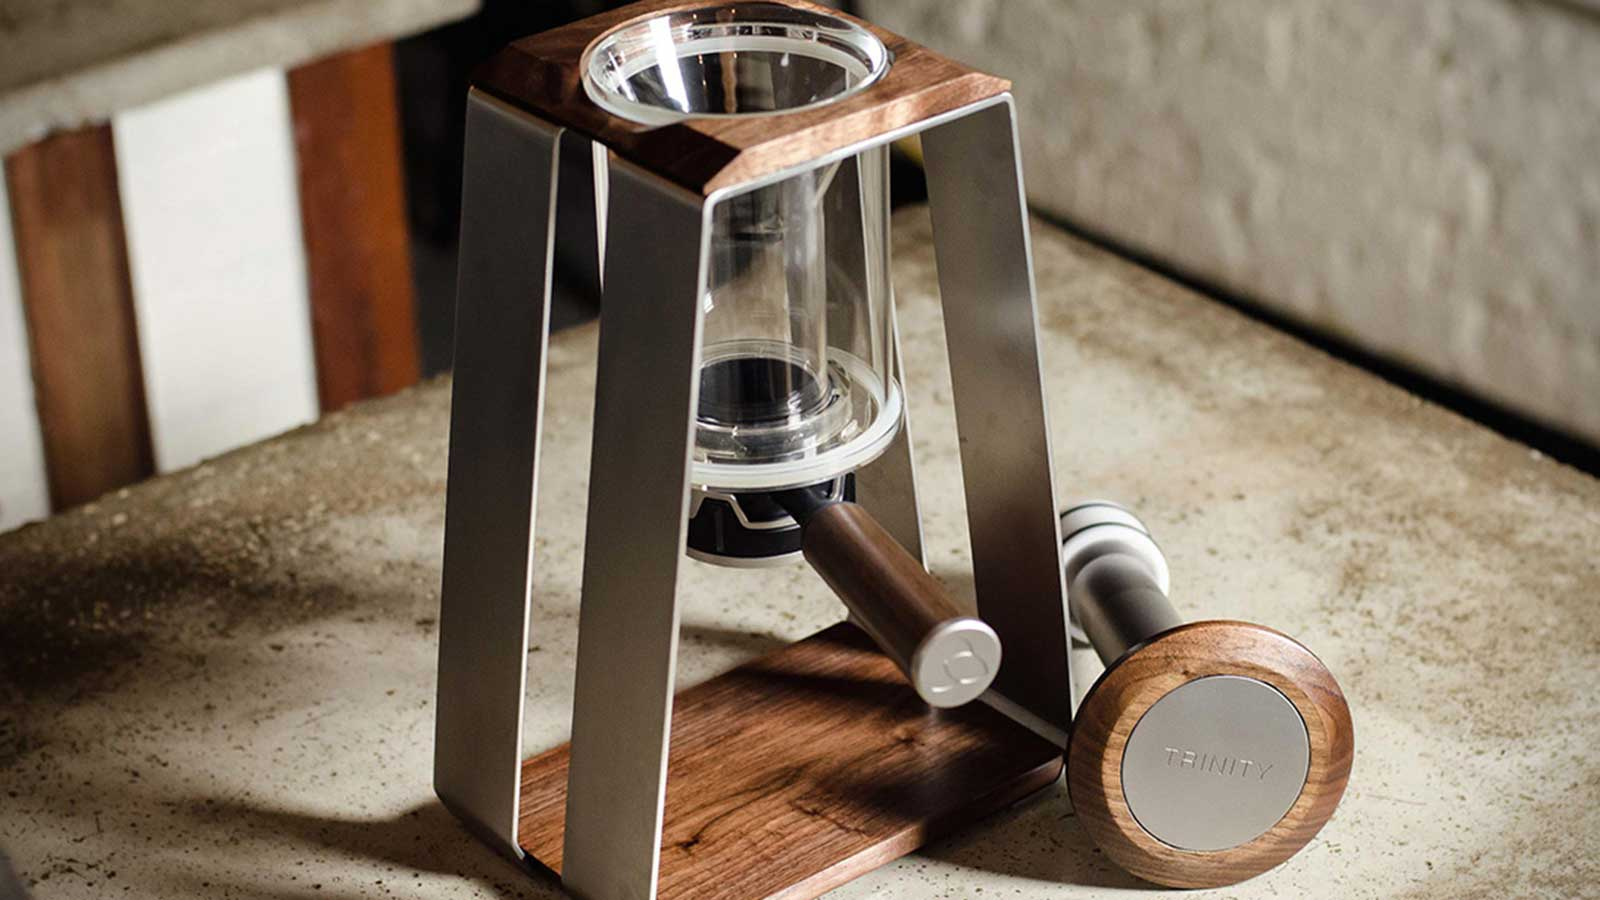 TRINITY ONE COFFEE BREWER